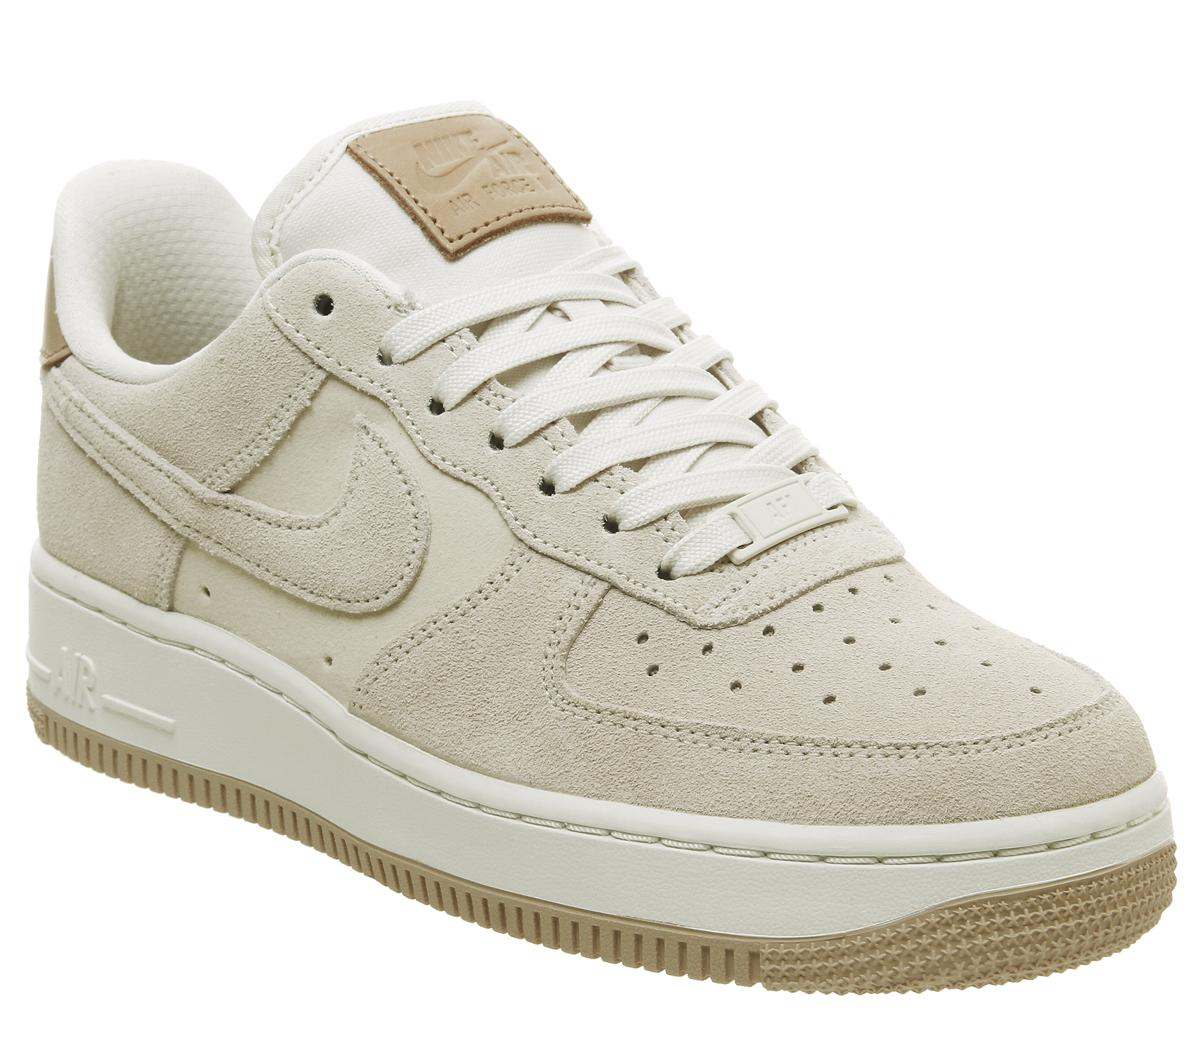 Nike Air Force 1 07 Trainers Pale Ivory